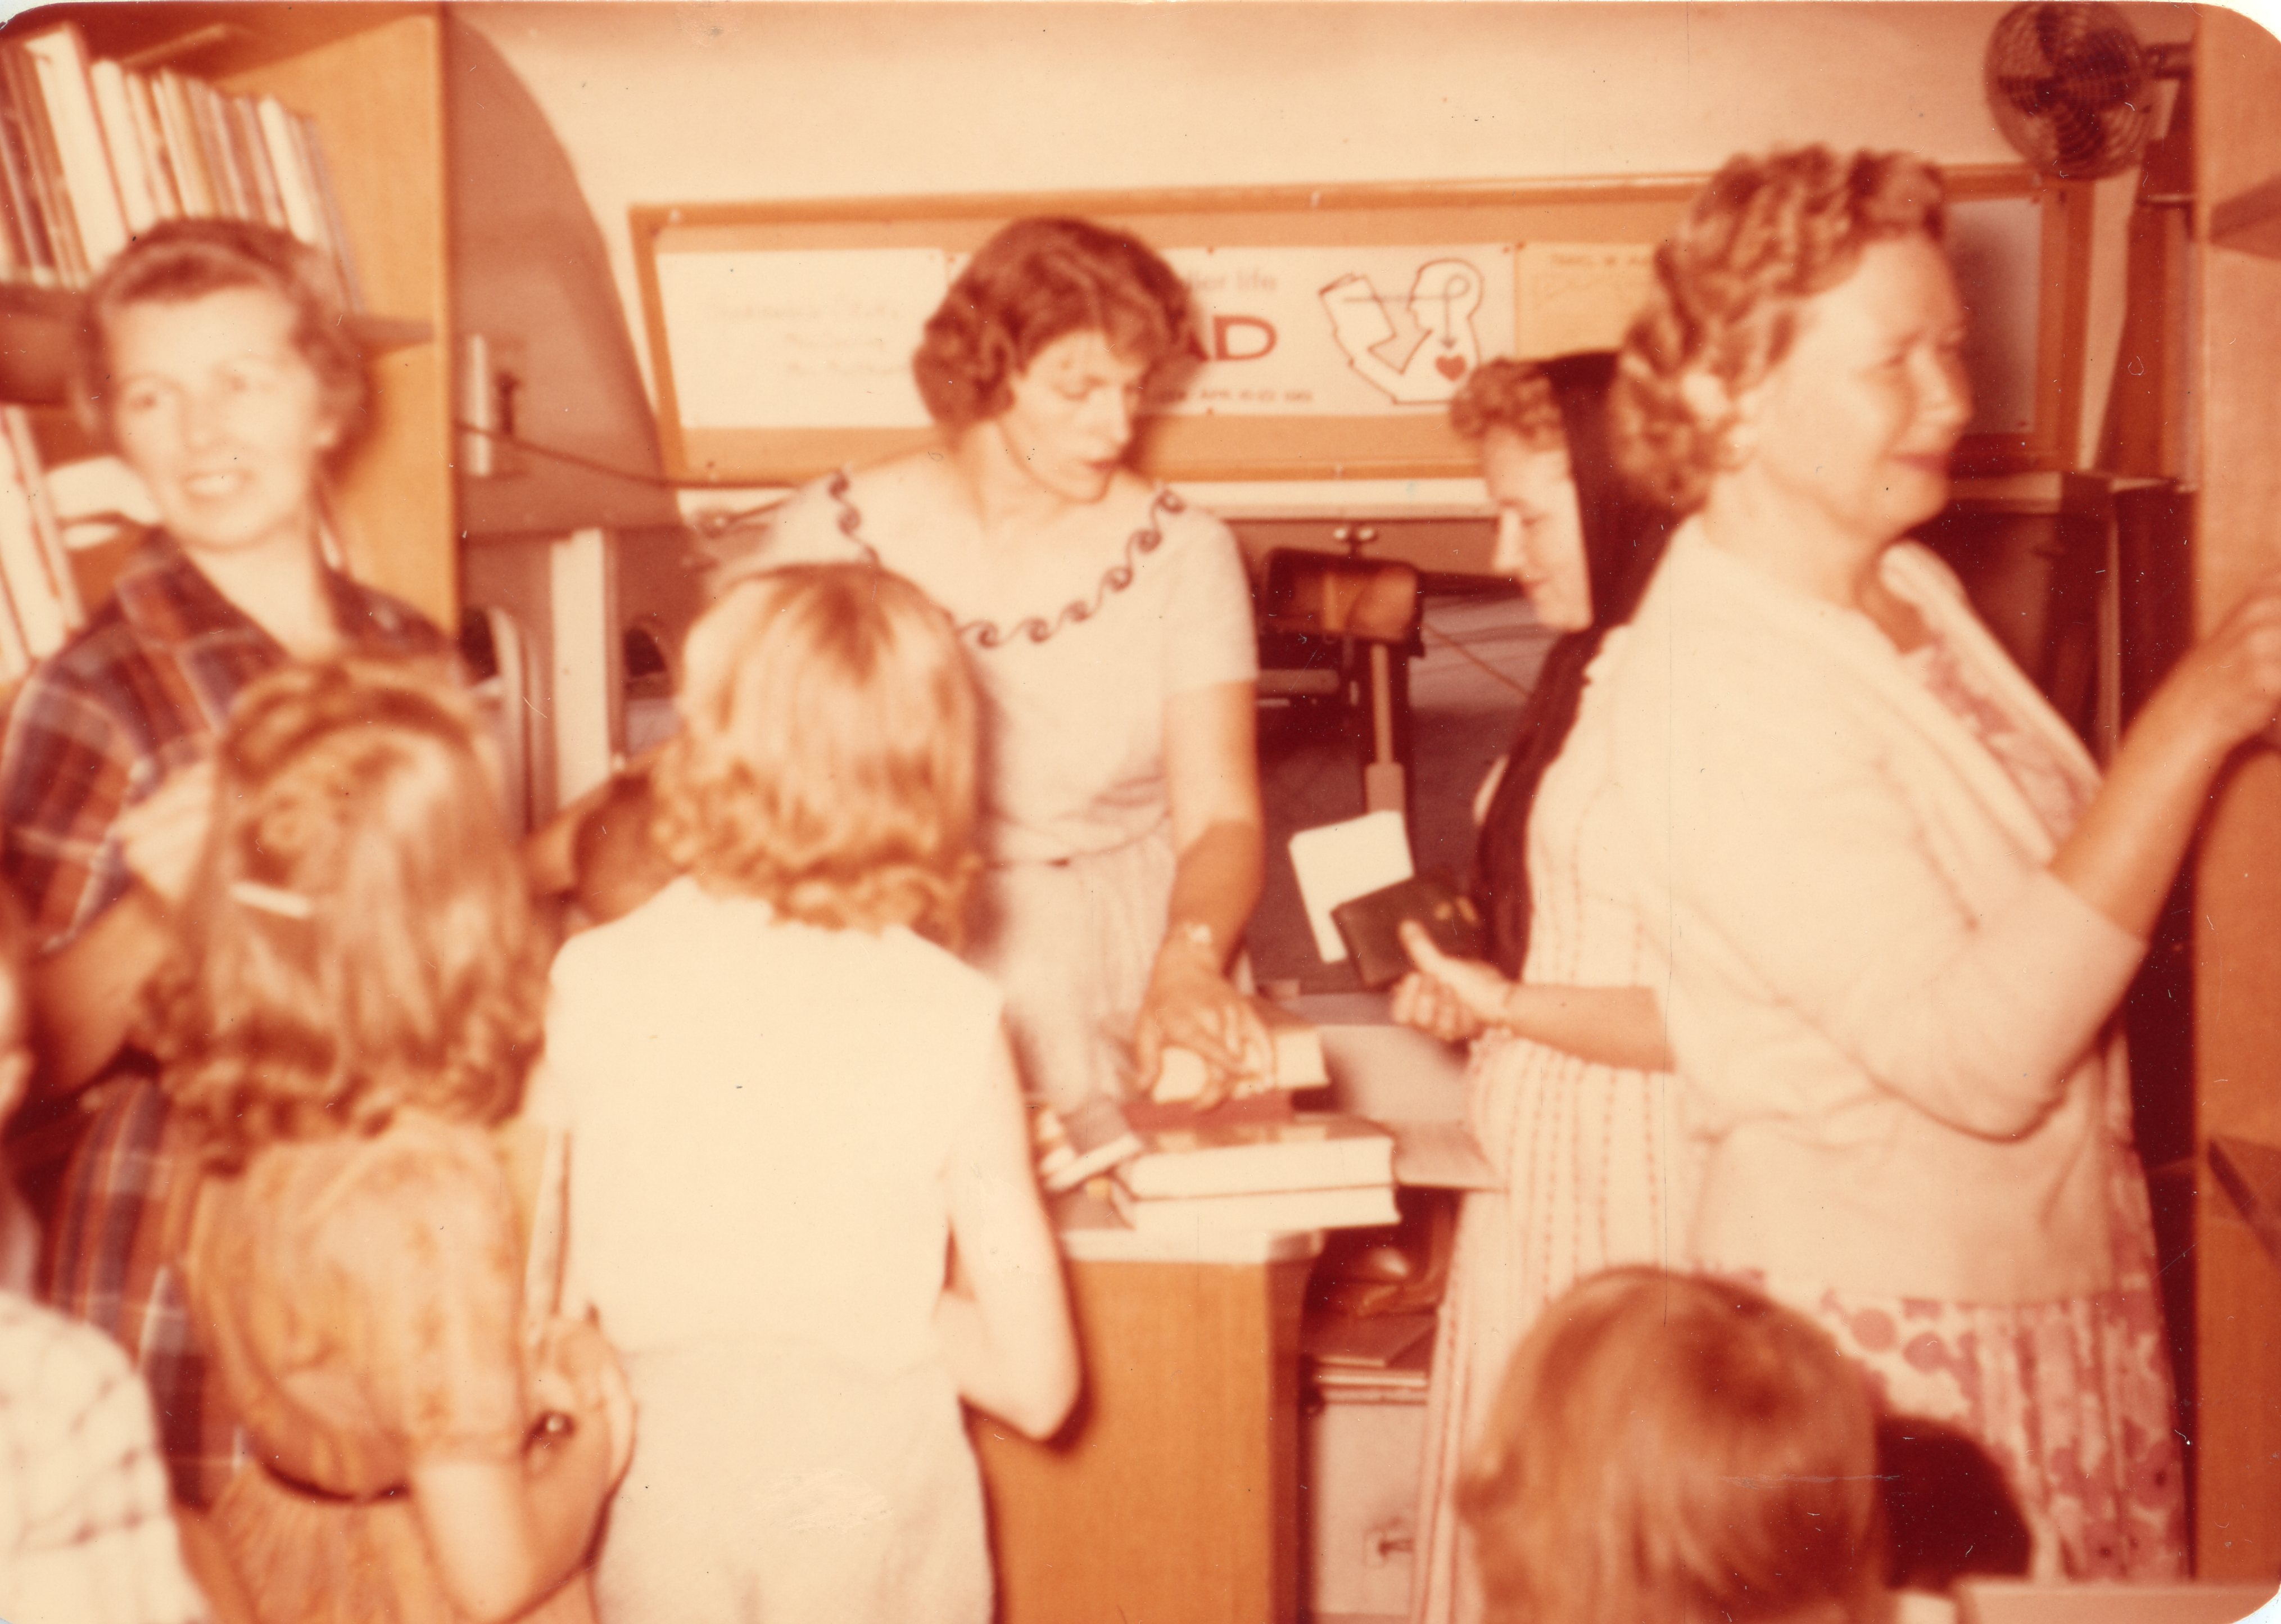 1962 inside the first Bookmobile